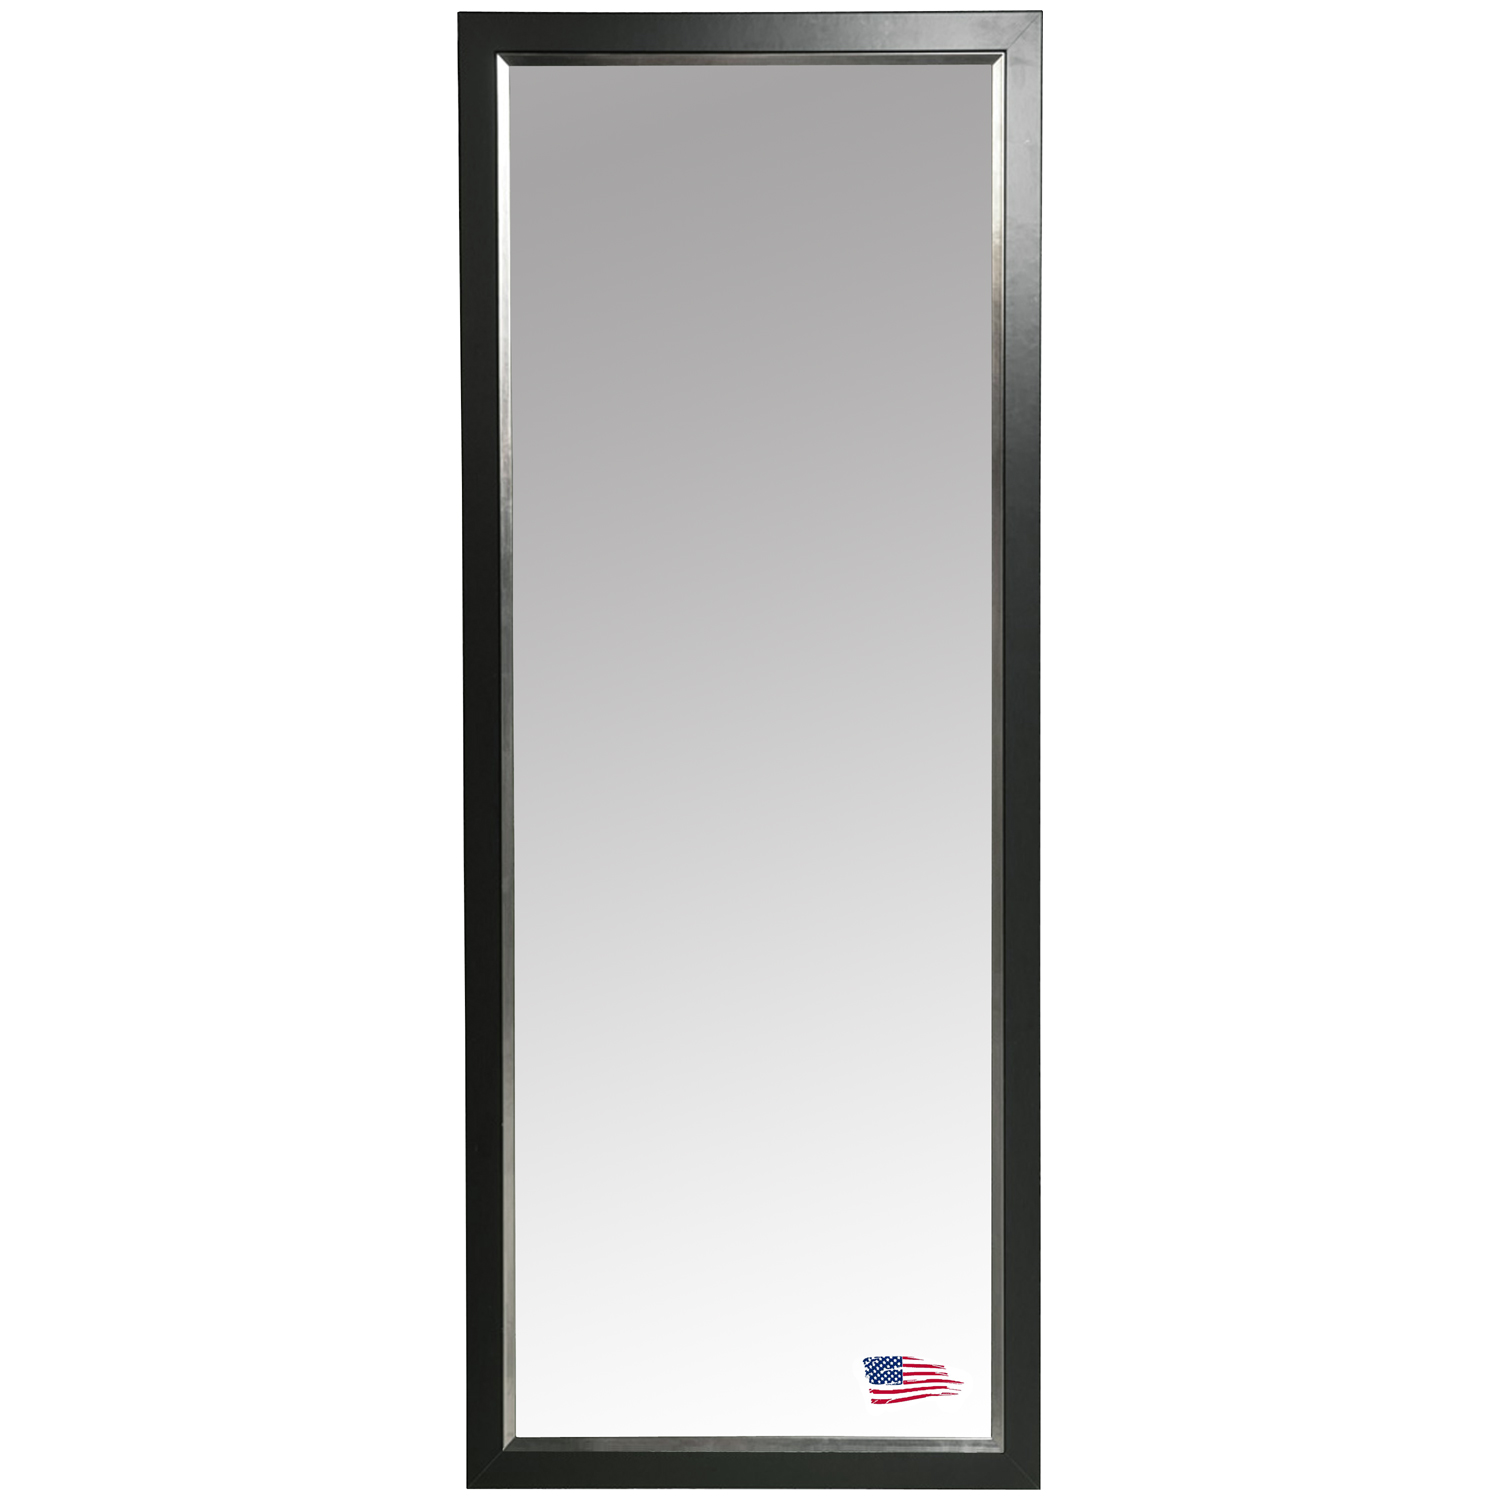 Rectangular Mirror - Black Frame, Silver Liner